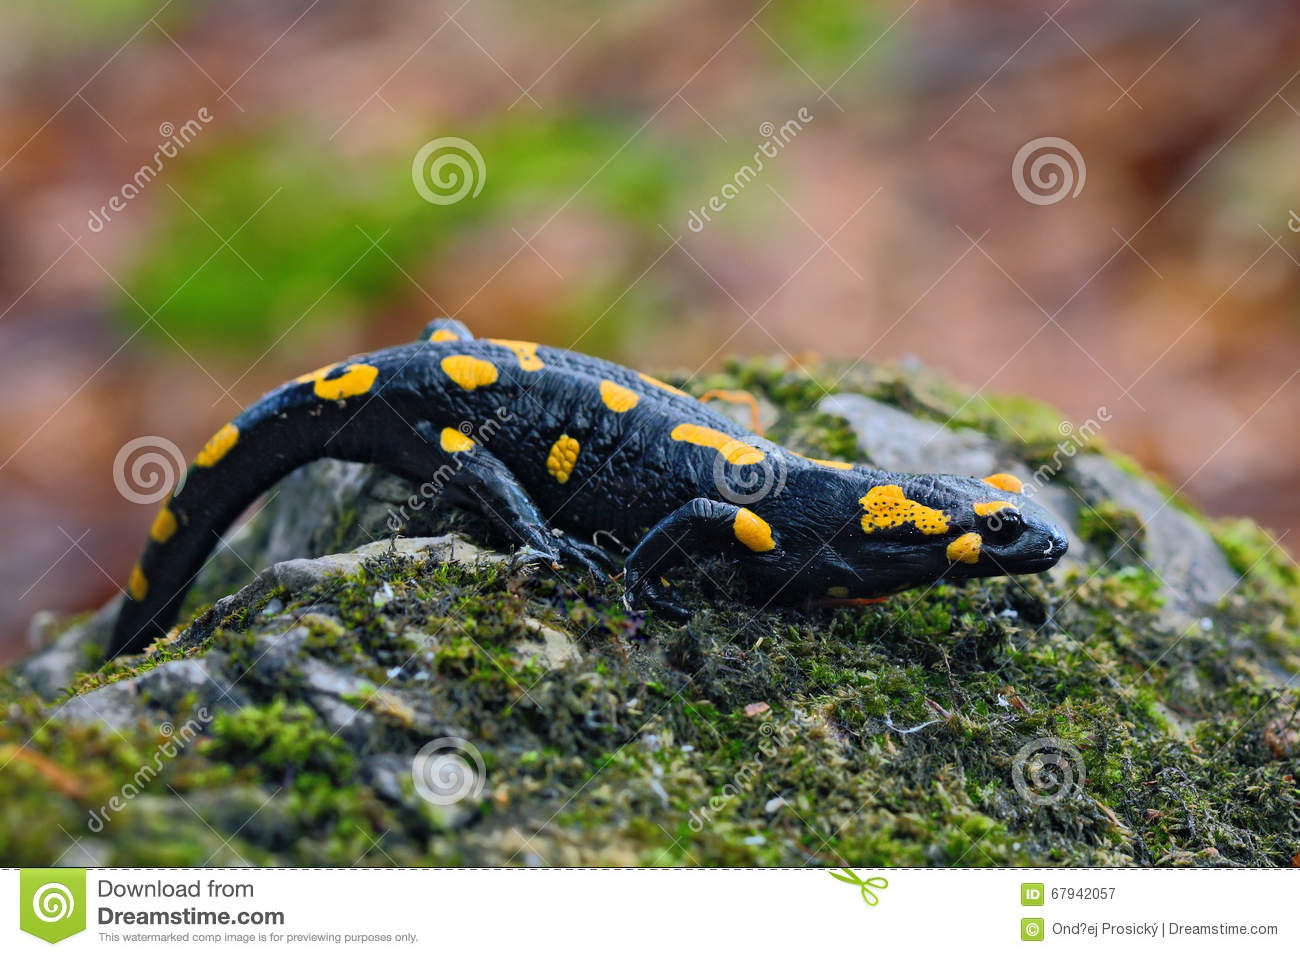 Gorgeous Fire Salamander, Salamandra salamandra, spotted amphibian on the grey stone with green moss